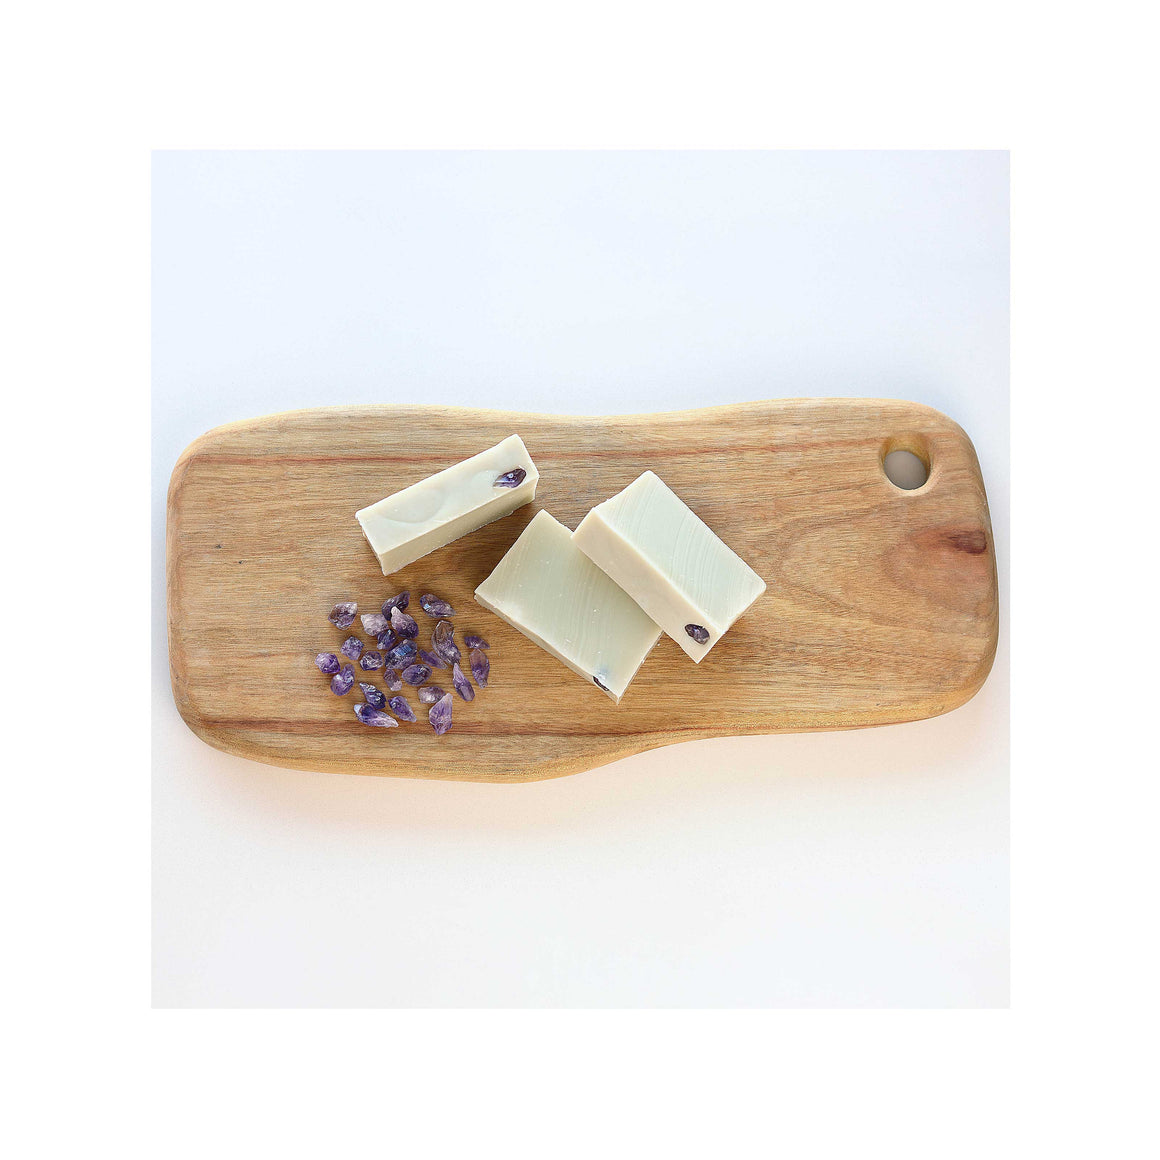 Calm & Relax Crystal Soap